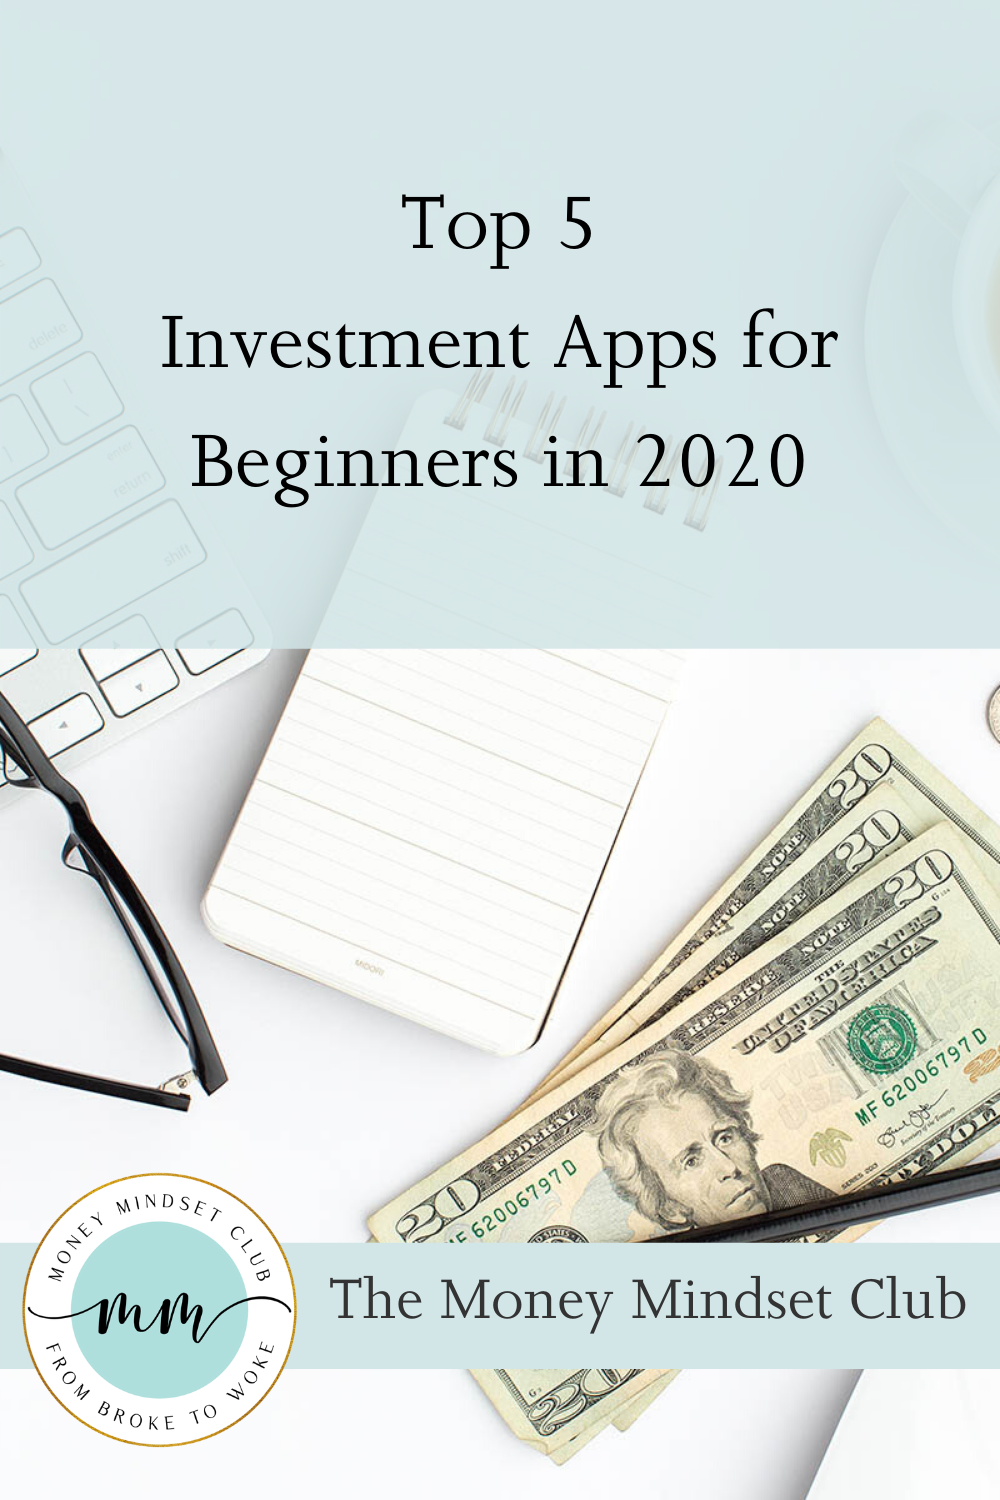 Beginners can start investing with as little as $5 with apps! These are our top picks to get you started!   #investing #investing101 #investment #bossbabe #womenempowerment #girlboss #moneymindset #growthmindset #savingmoneytips #financialliteracy #financialplanning #retirement #betterment #robinhood #stash #acorns #ellevest #financetips #moneysavers #budgeting